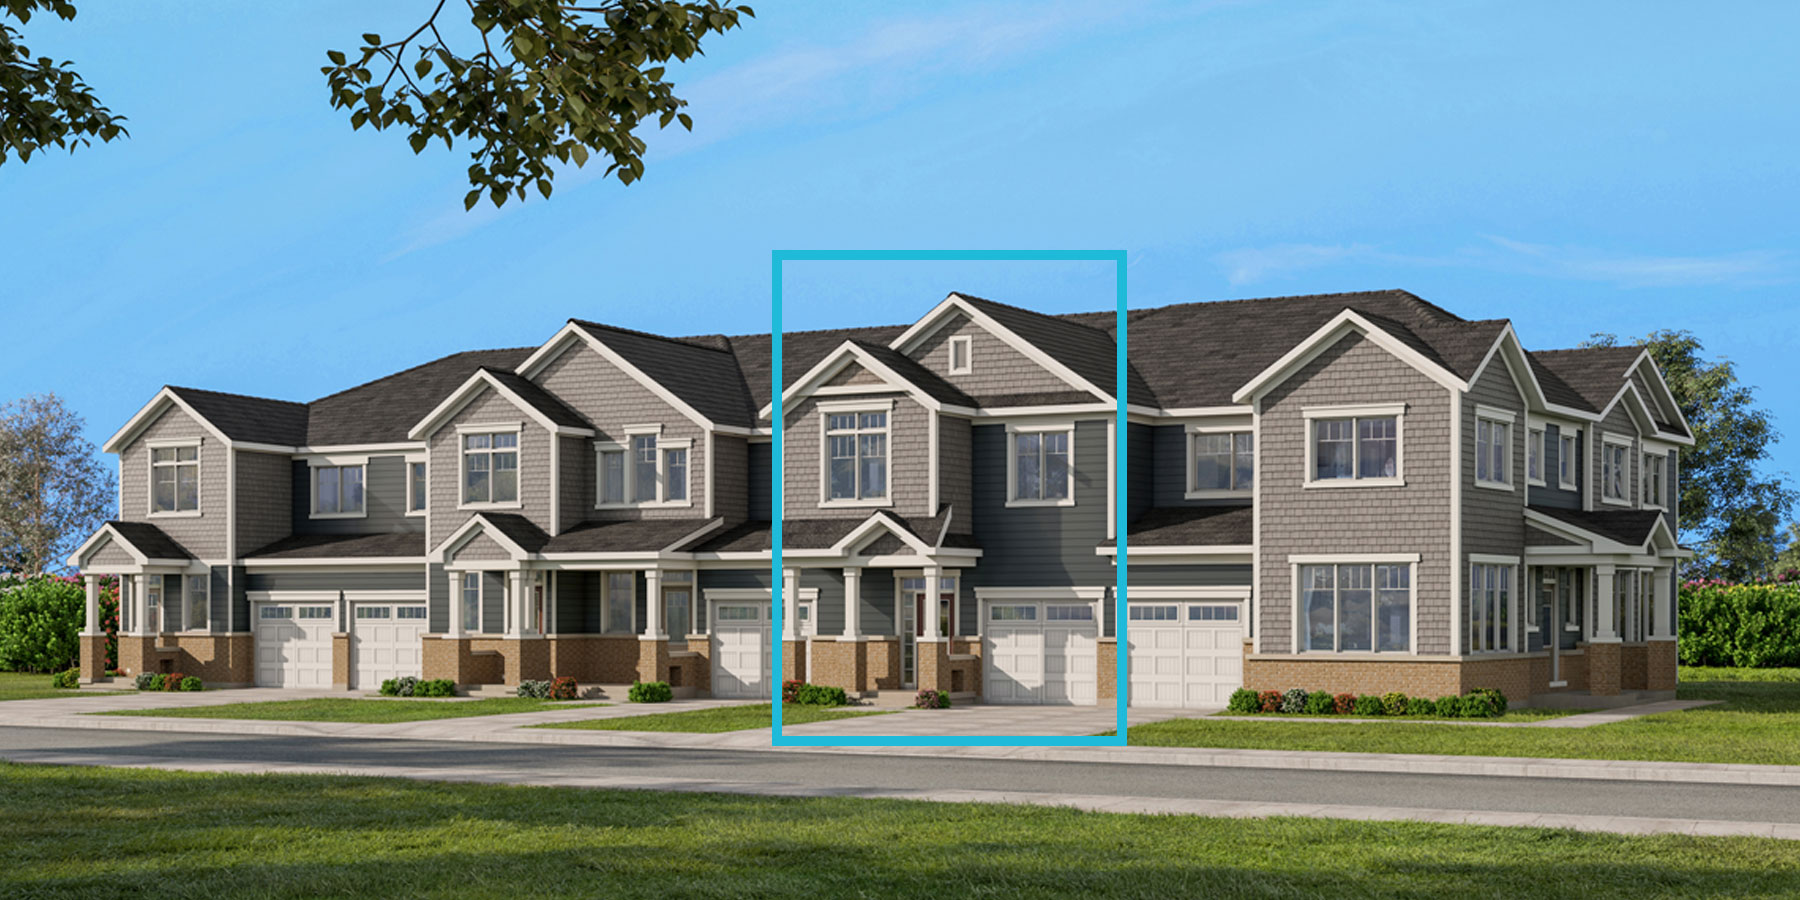 Oak Plan TownHomes at Connections In Kanata in Kanata Ontario by Mattamy Homes